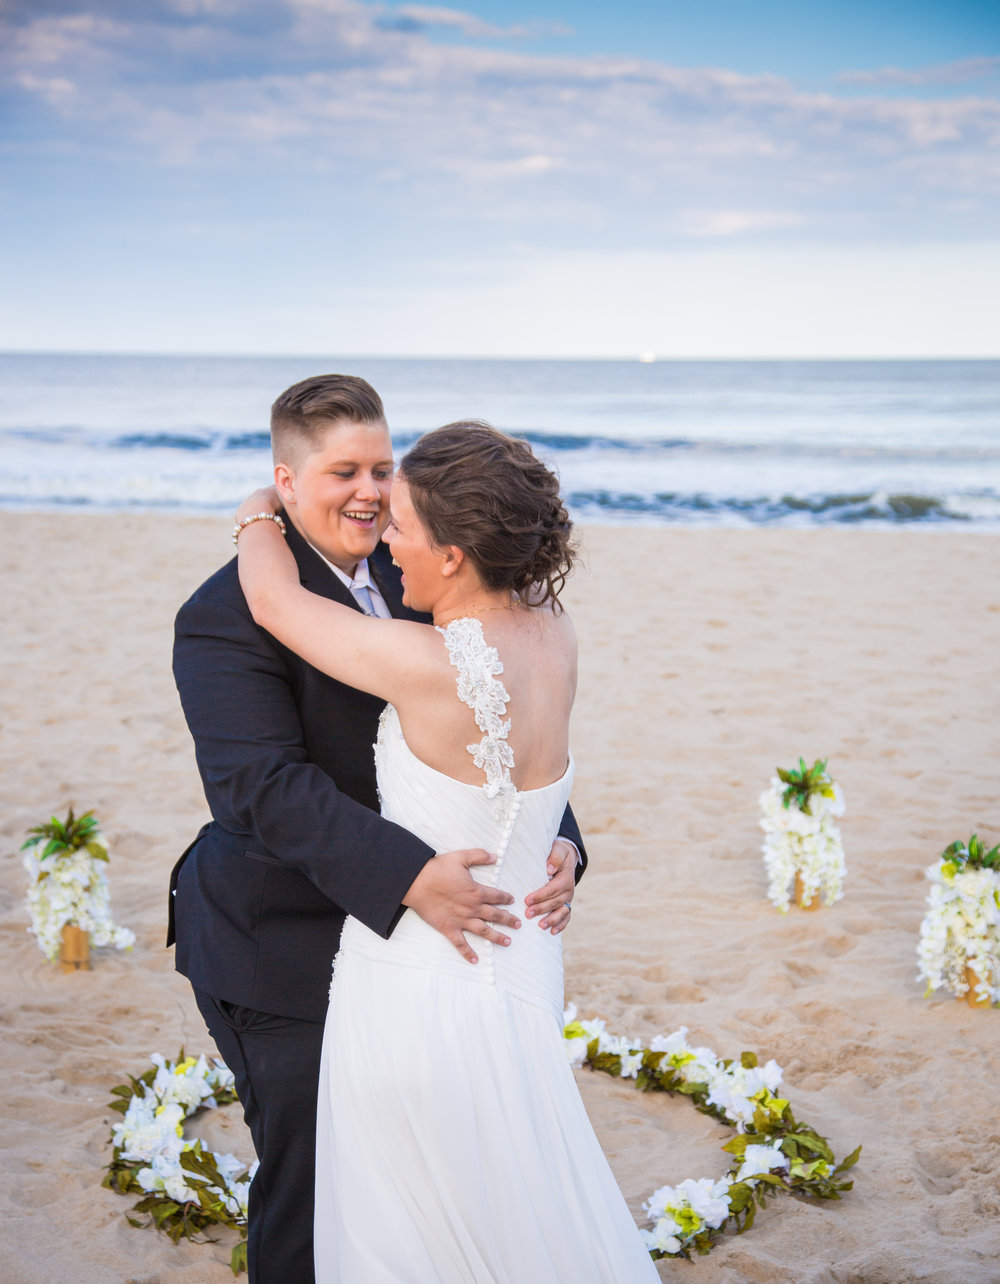 The newly married couple shares their first dance on the sand at the beach.